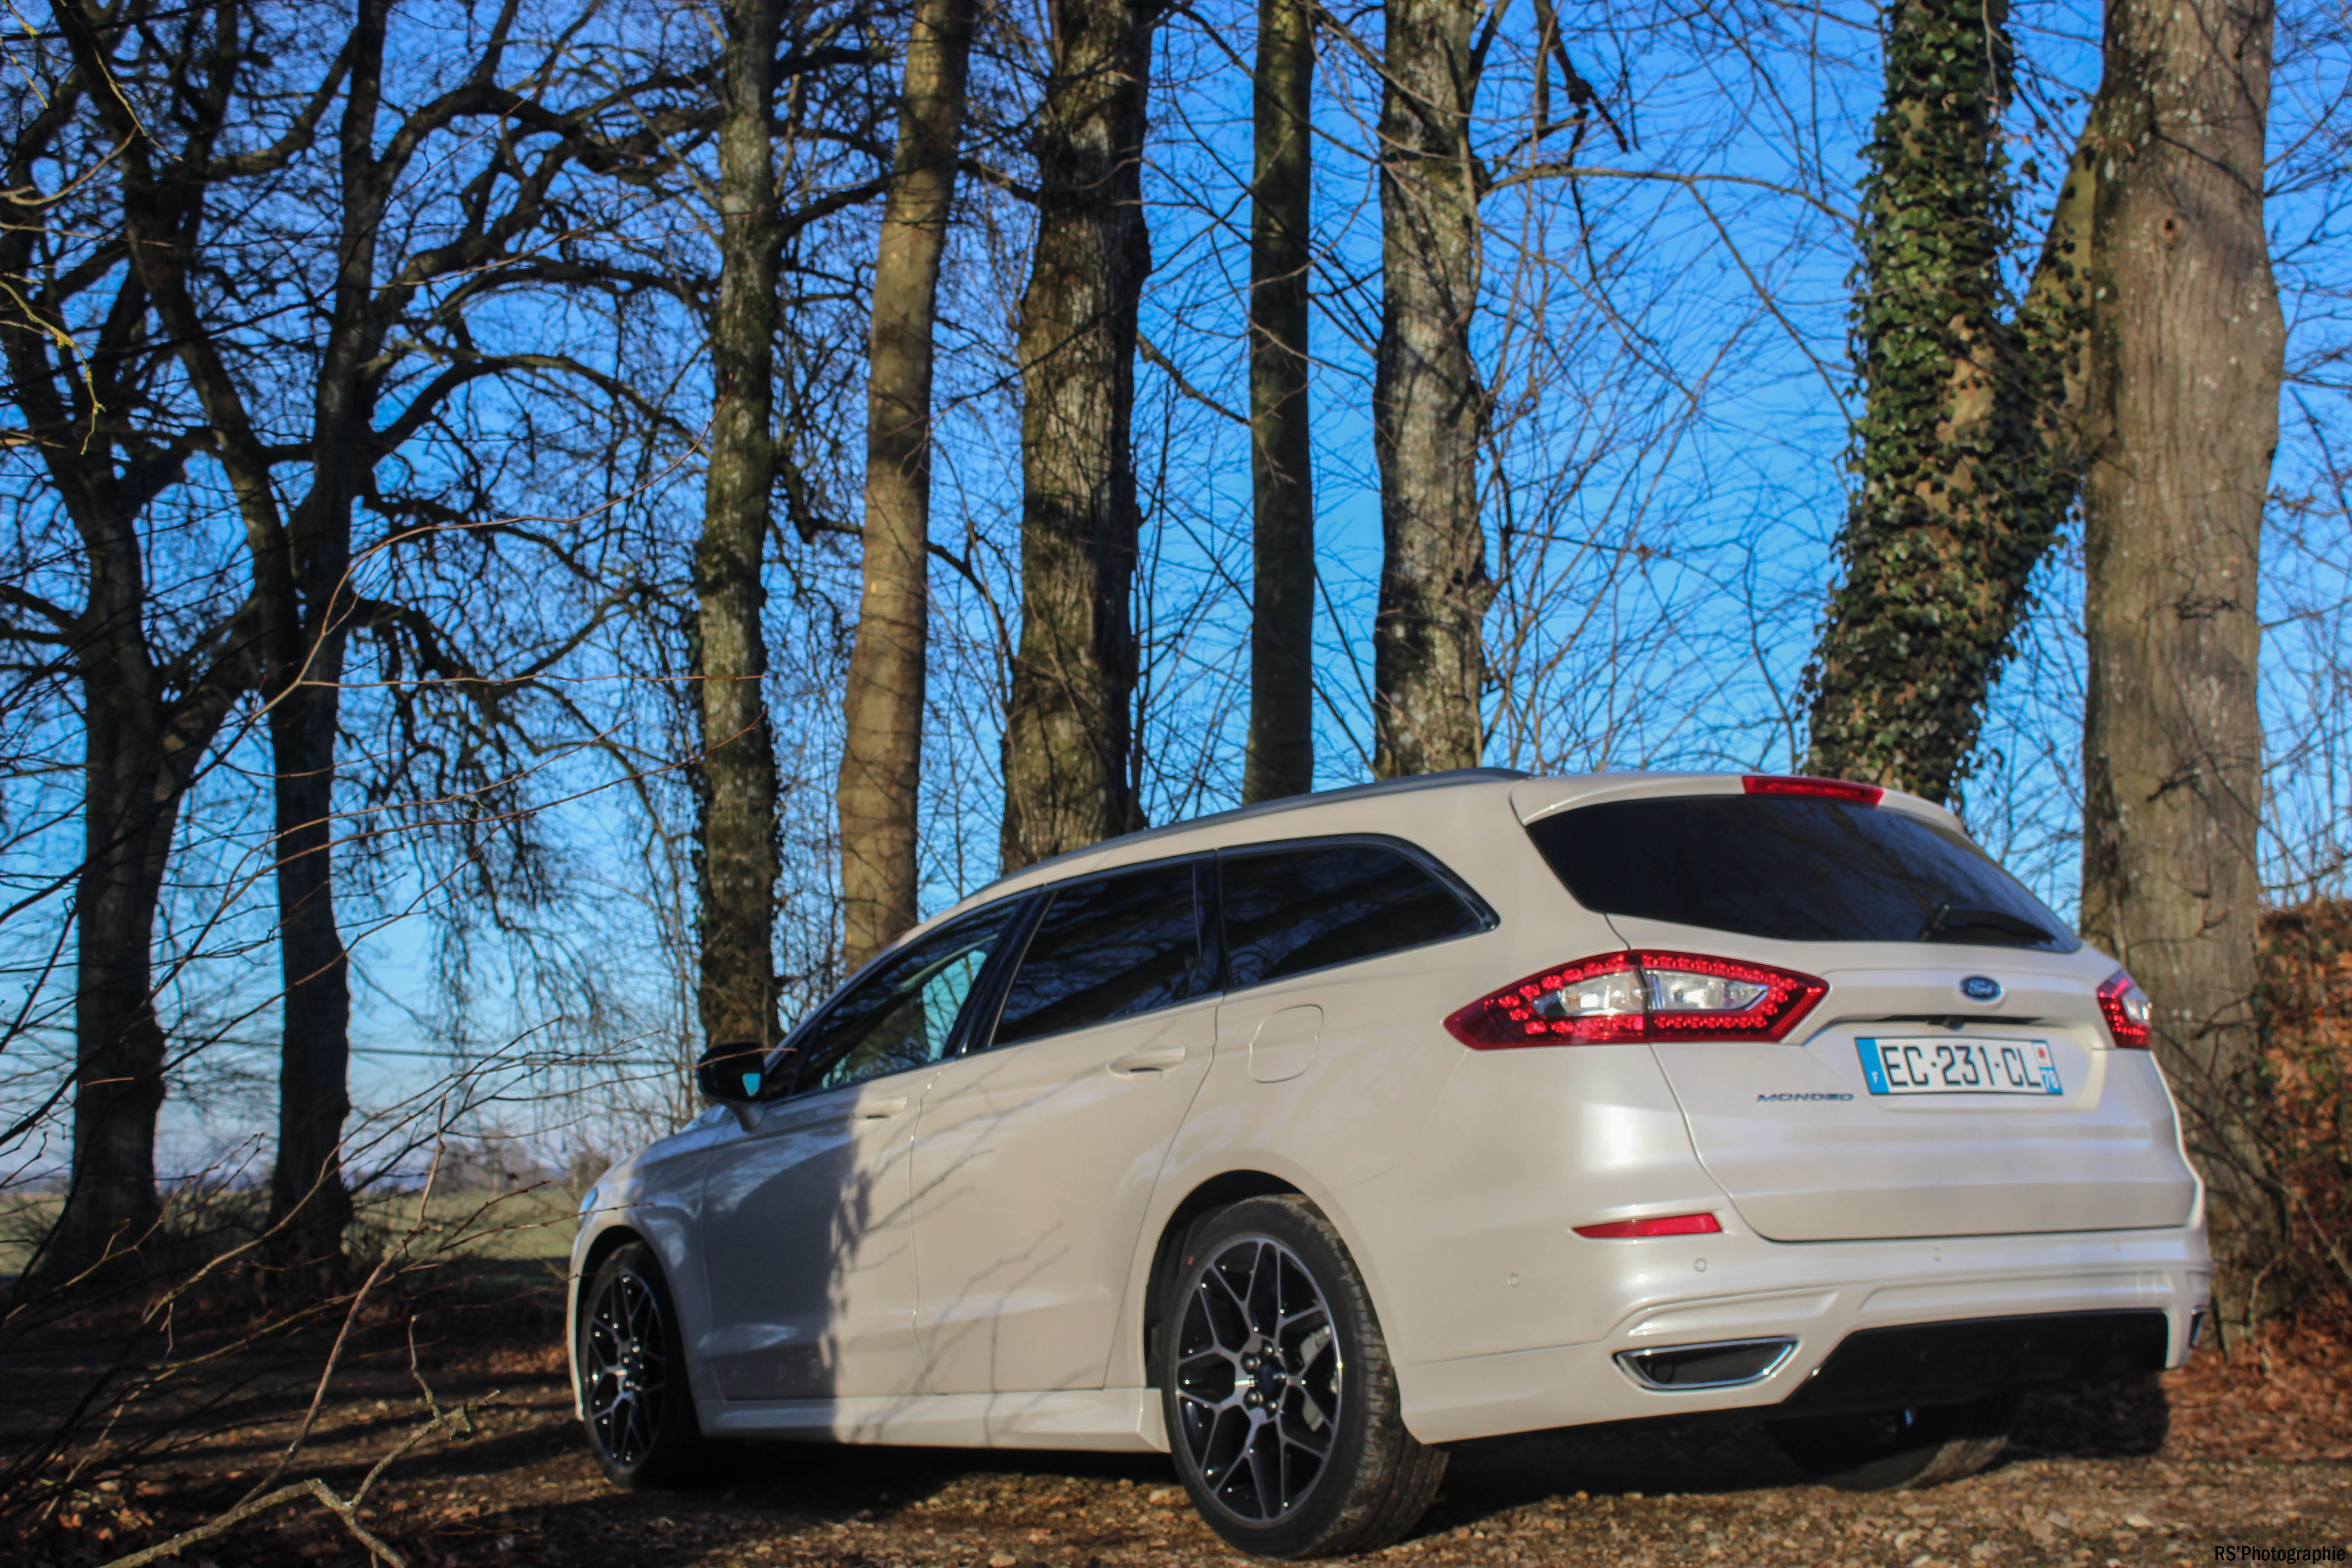 FordMondeoSW15-ford-mondeo-sw-180-arriere-rear-arnaud-demasier-rsphotographie